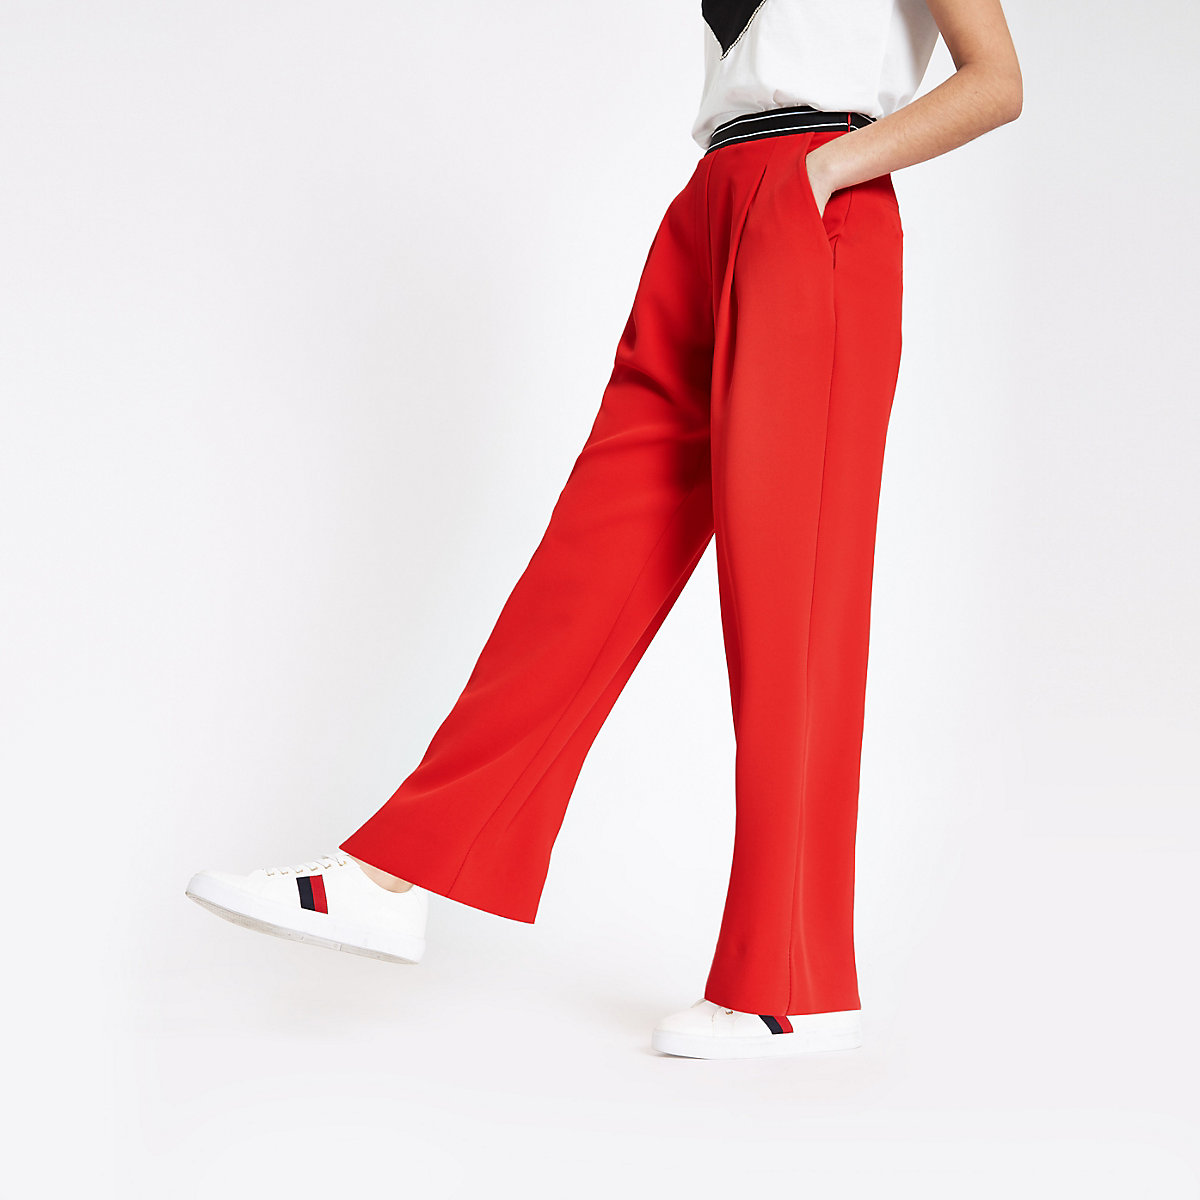 Red elasticated waist wide leg pants